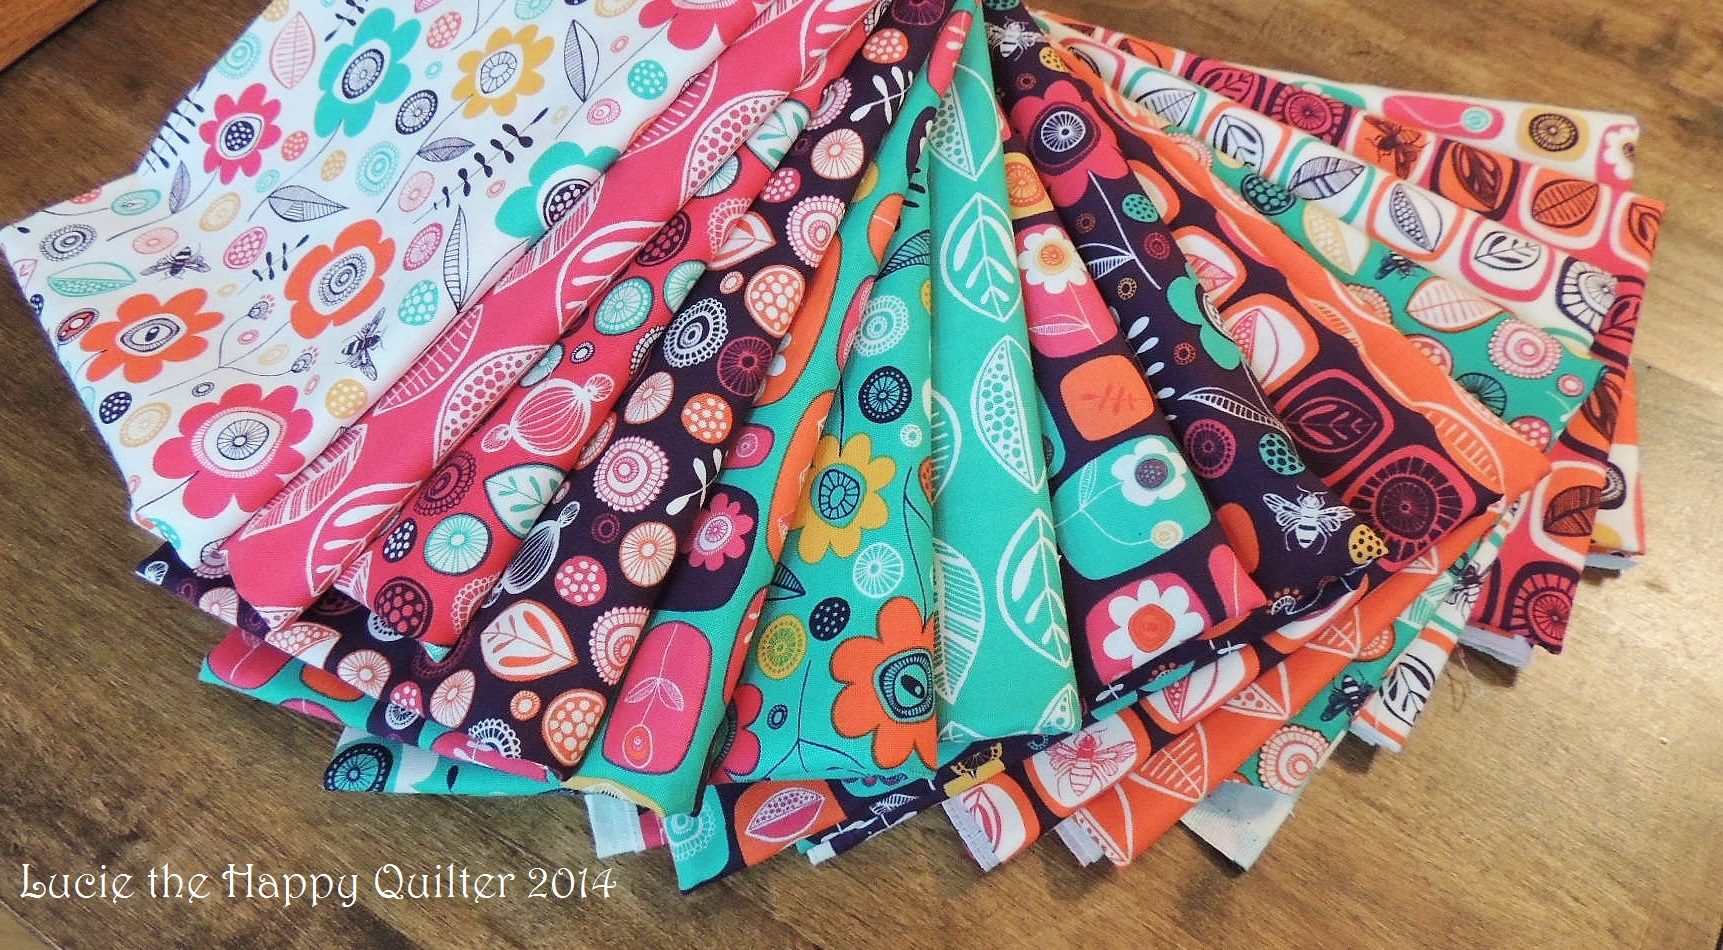 beyond the backyard by jane farnham lucie the happy quilter u0027s blog